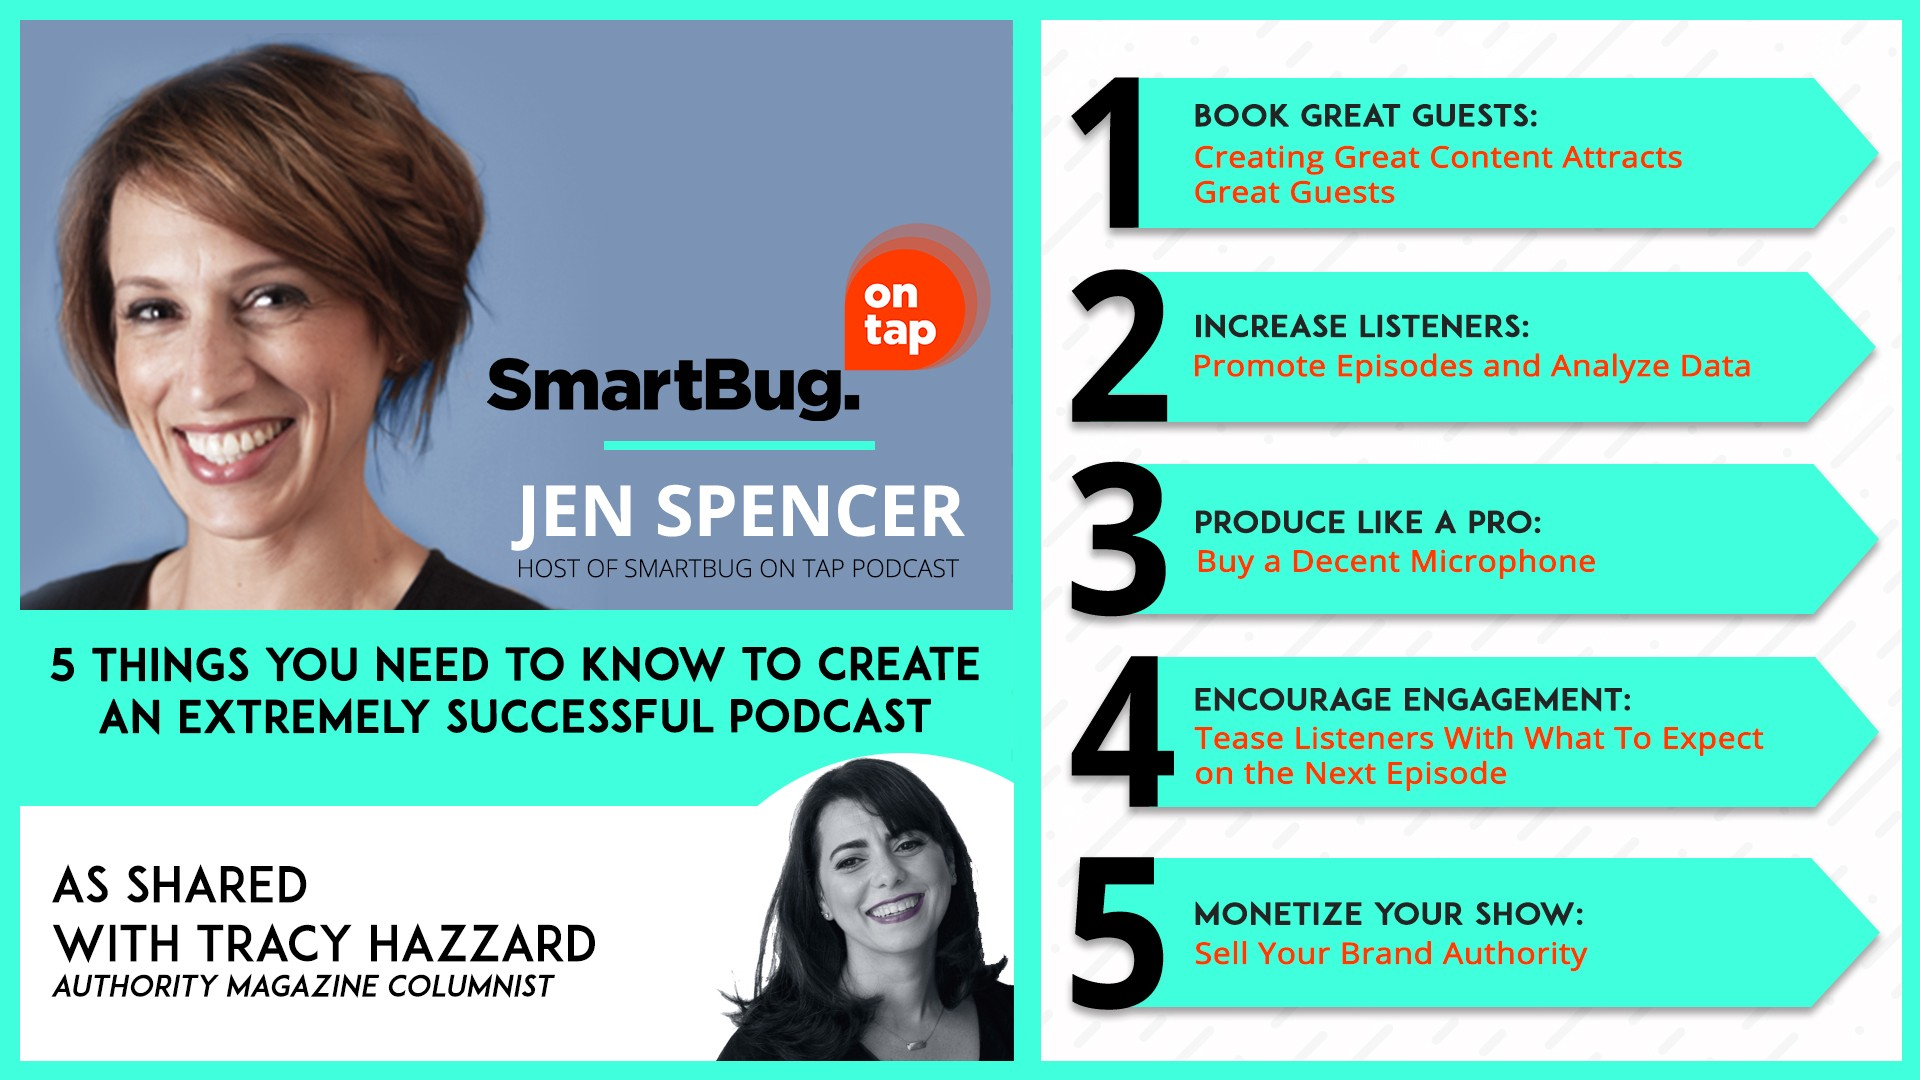 Tracy Hazzard, Authority Magazine, Medium, BuzzFeed, Jen Spencer, SmartBug on Tap